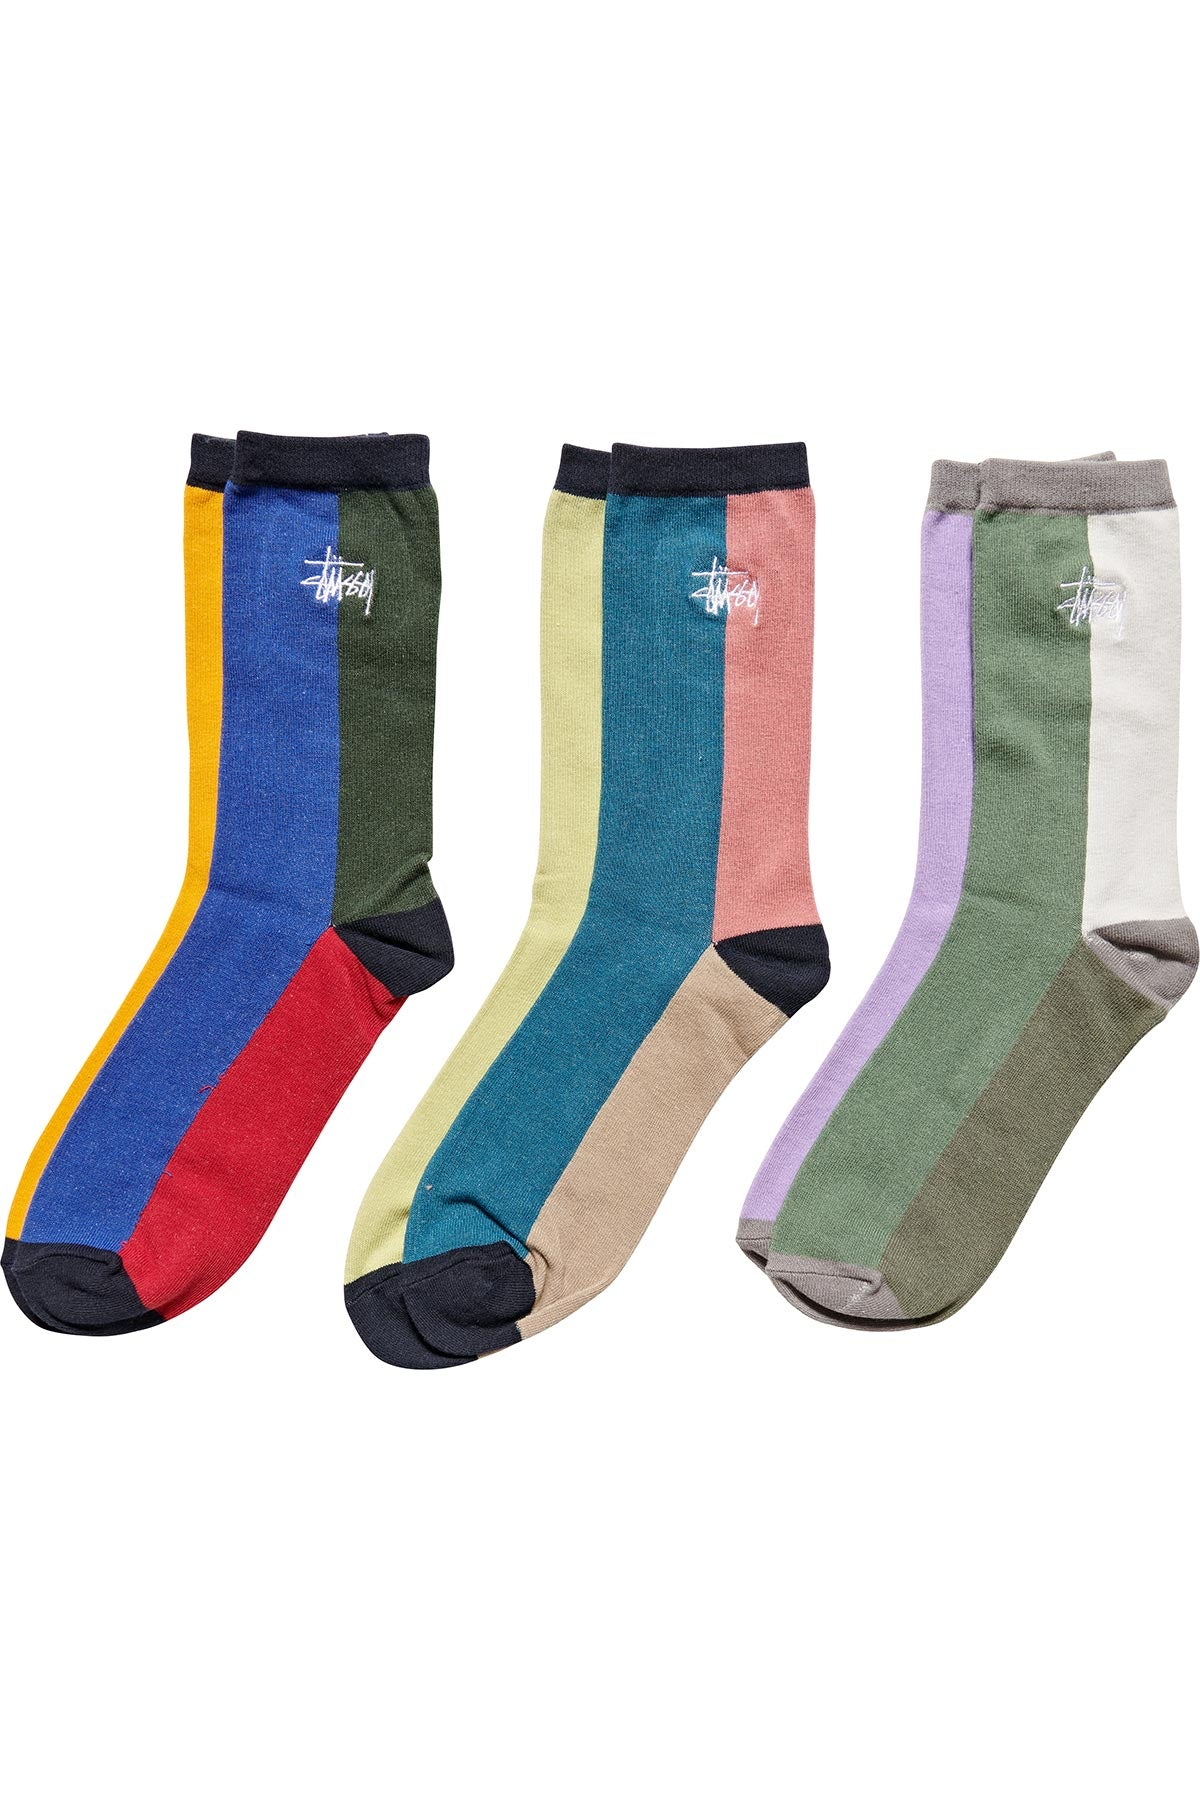 Graffiti Splice Sock (3 Pack) - R8gzwear